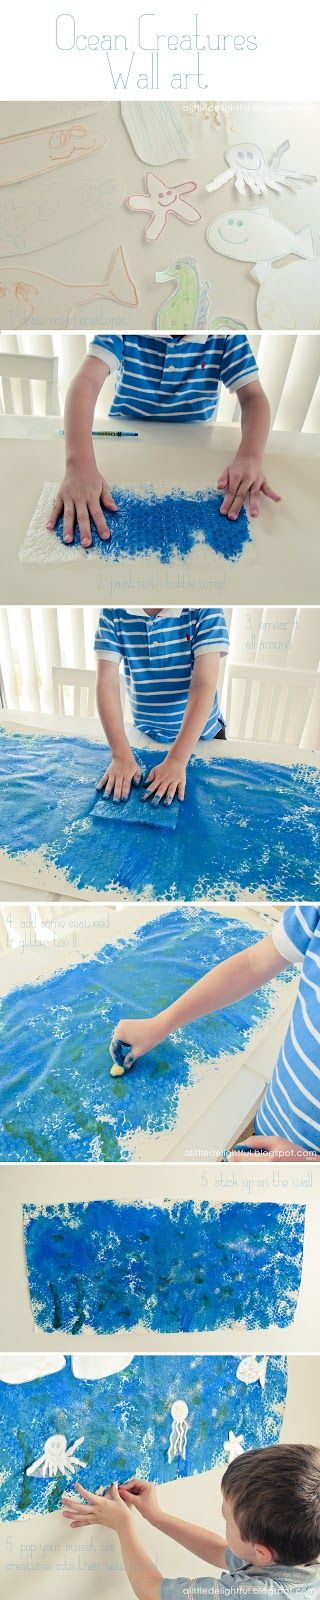 Ocean creatures wall art project. This might be fun to do as a group, and create one large display. Especially to culminate our ocean unit